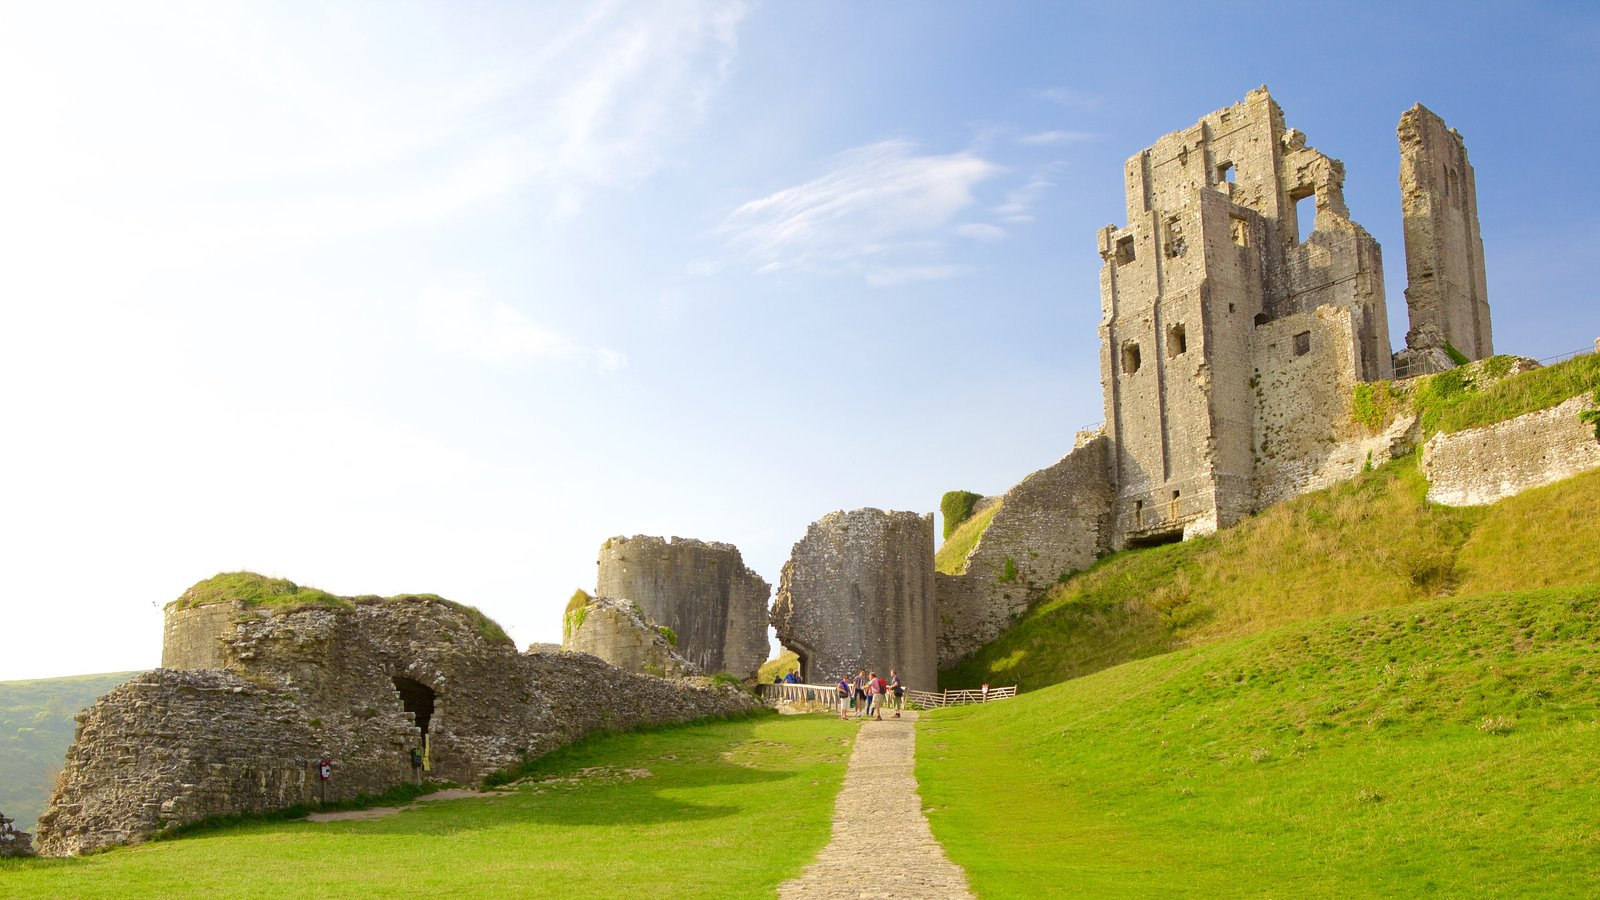 Corfe Castle showing tranquil scenes, a ruin and heritage elements